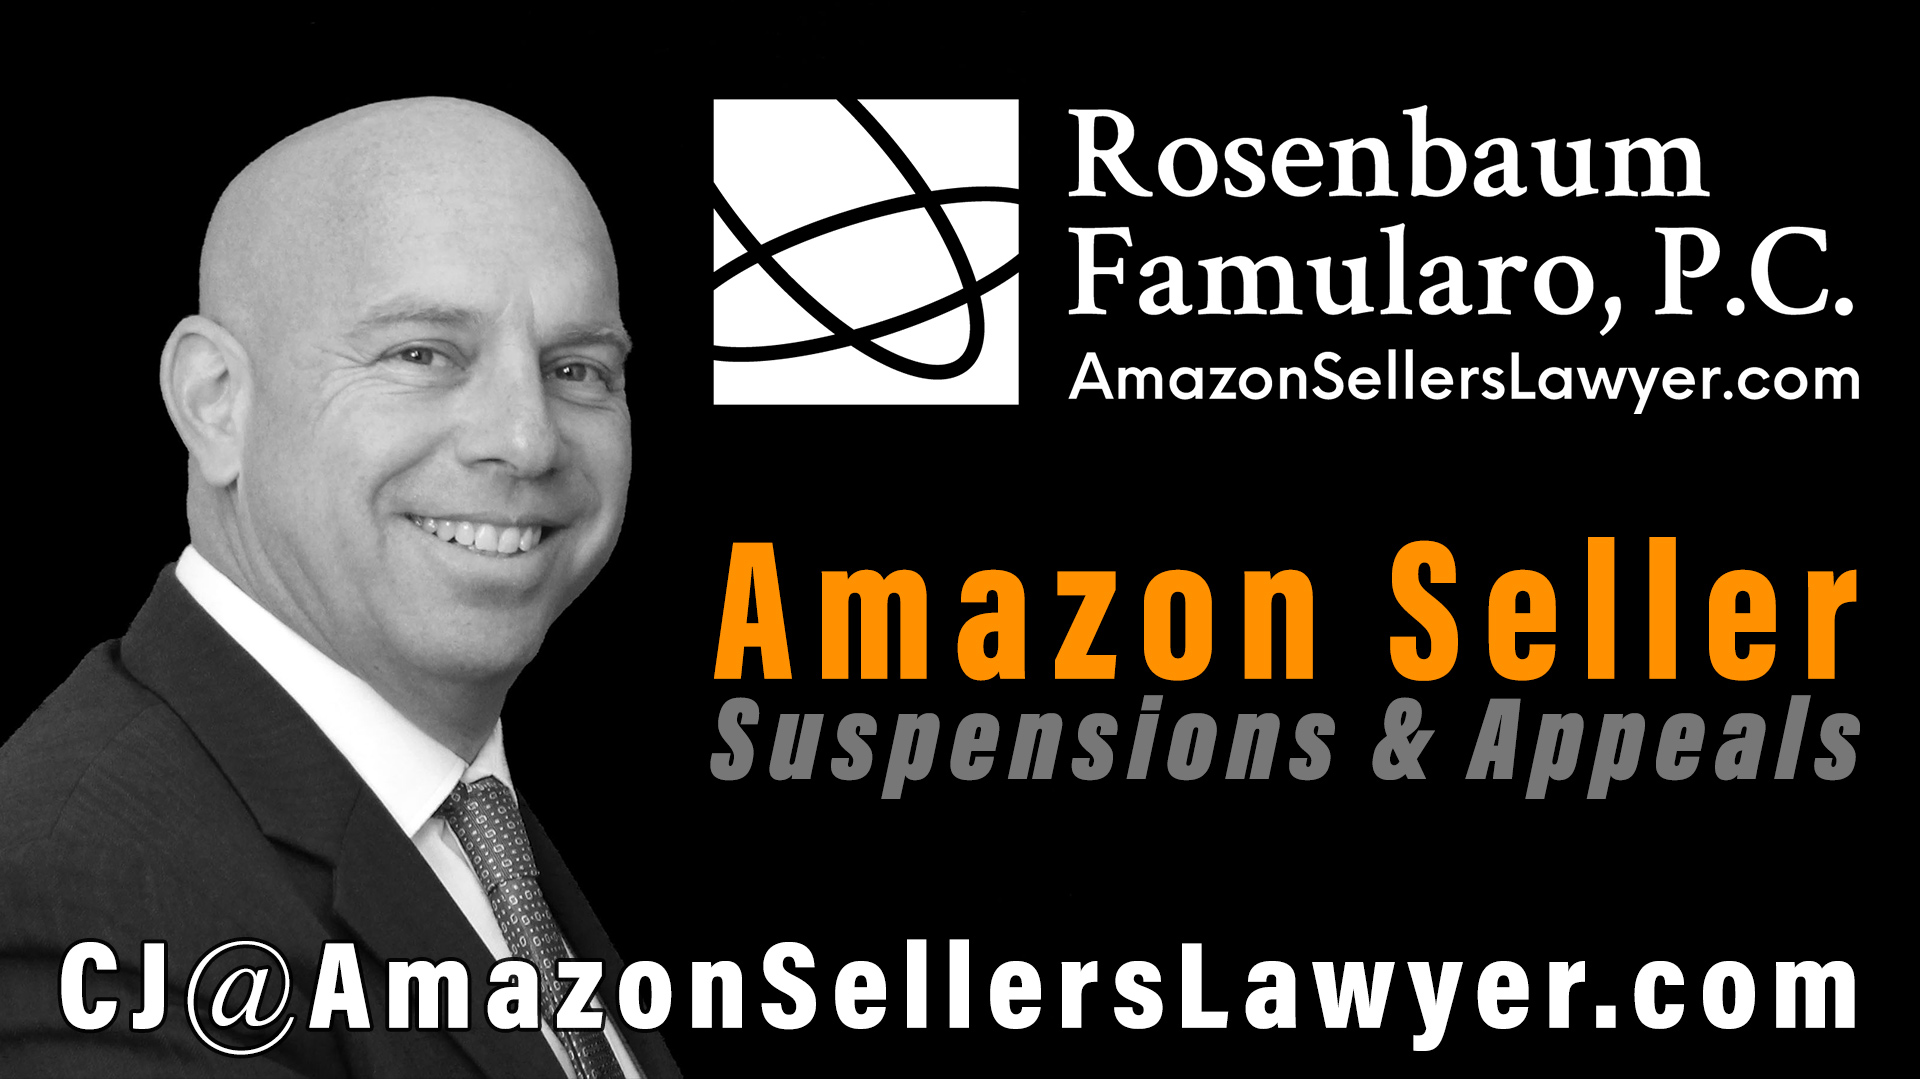 Amazon seller suspension appeals